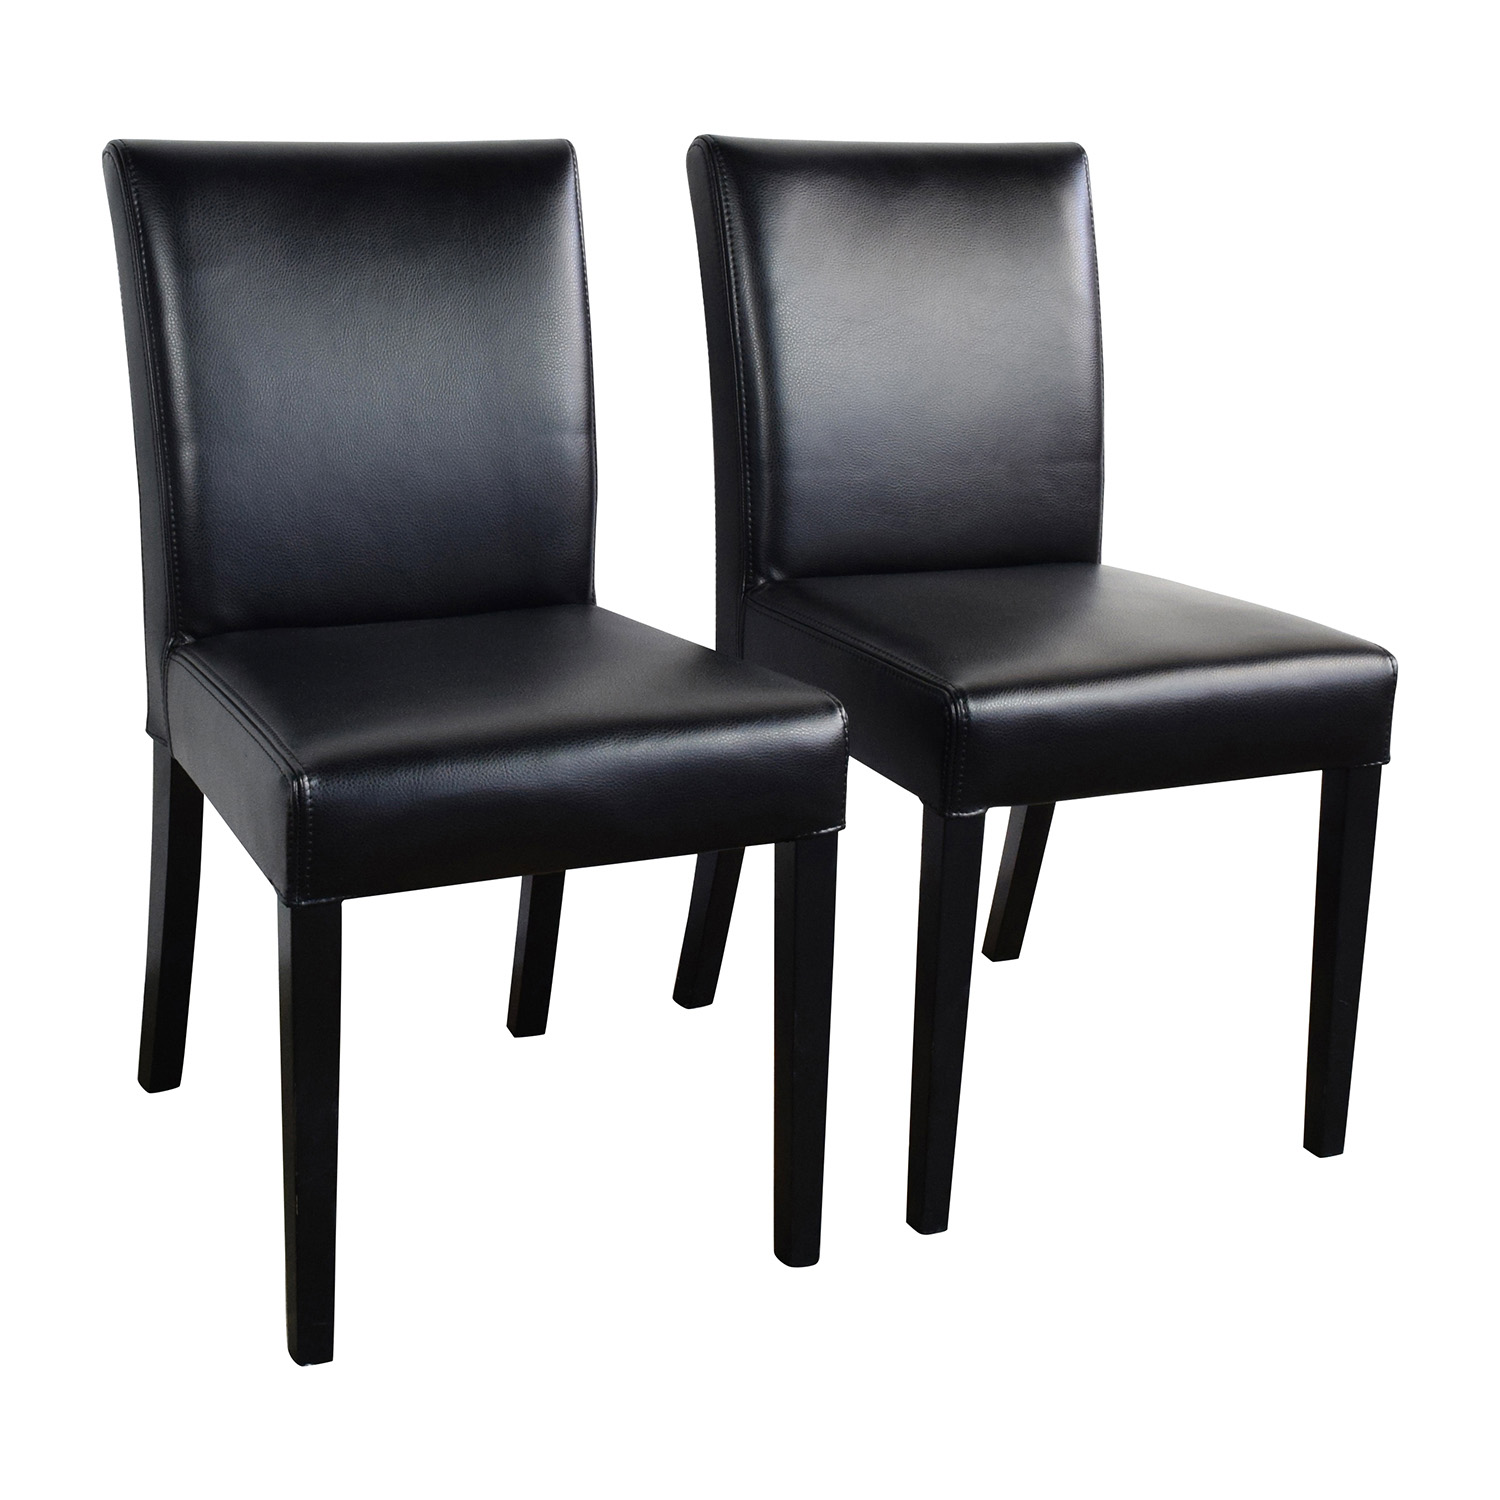 ... Crate And Barrel Crate U0026 Barrel Lowe Onyx Black Leather Chairs Black ...